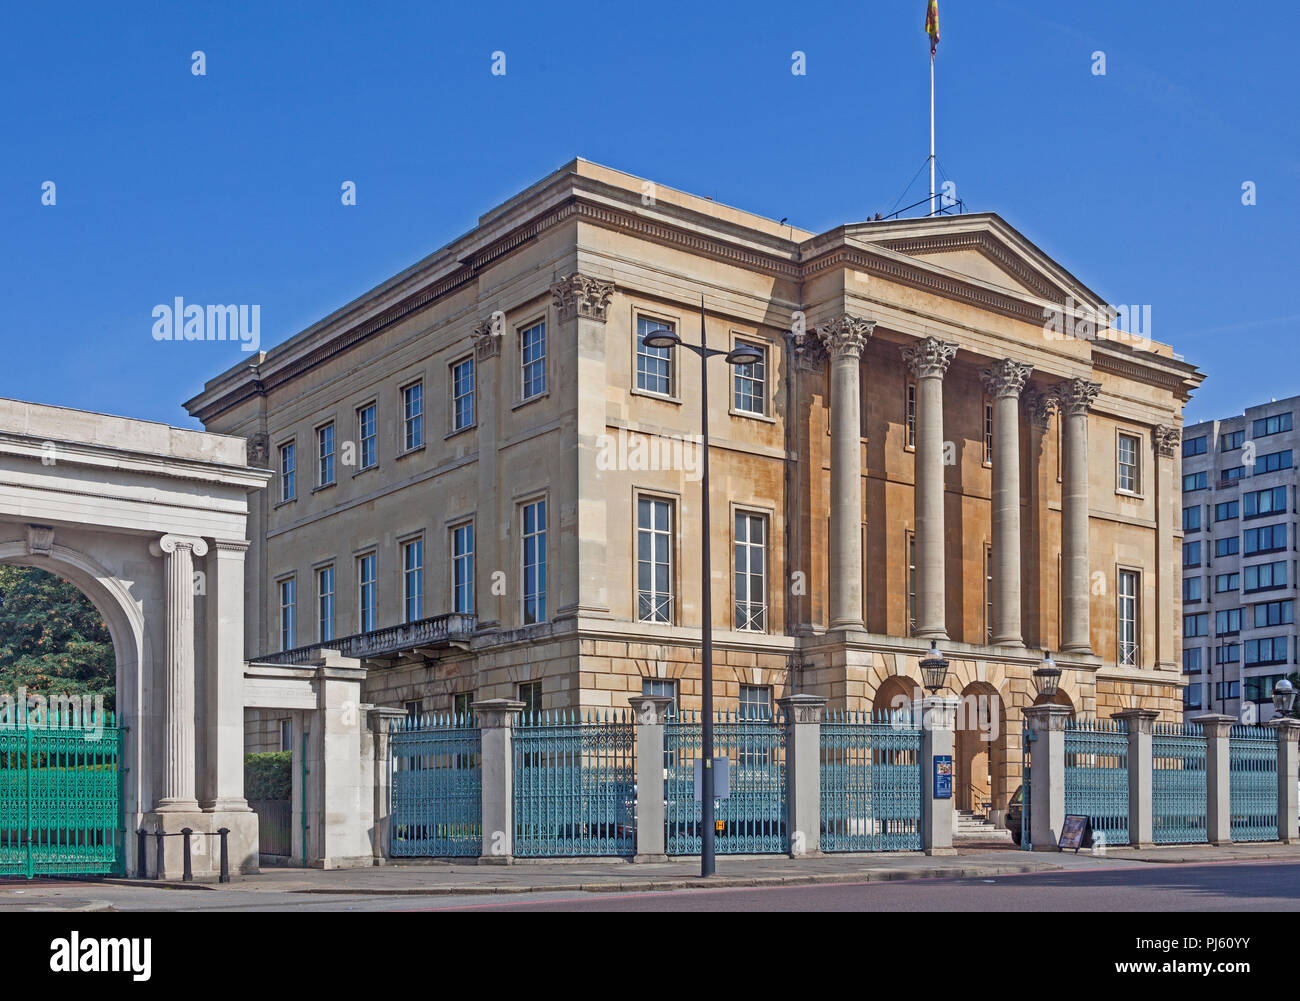 Apsley House - 'No 1 London' - the London townhouse of the Dukes of Wellington, at Hyde Park Corner - Stock Image